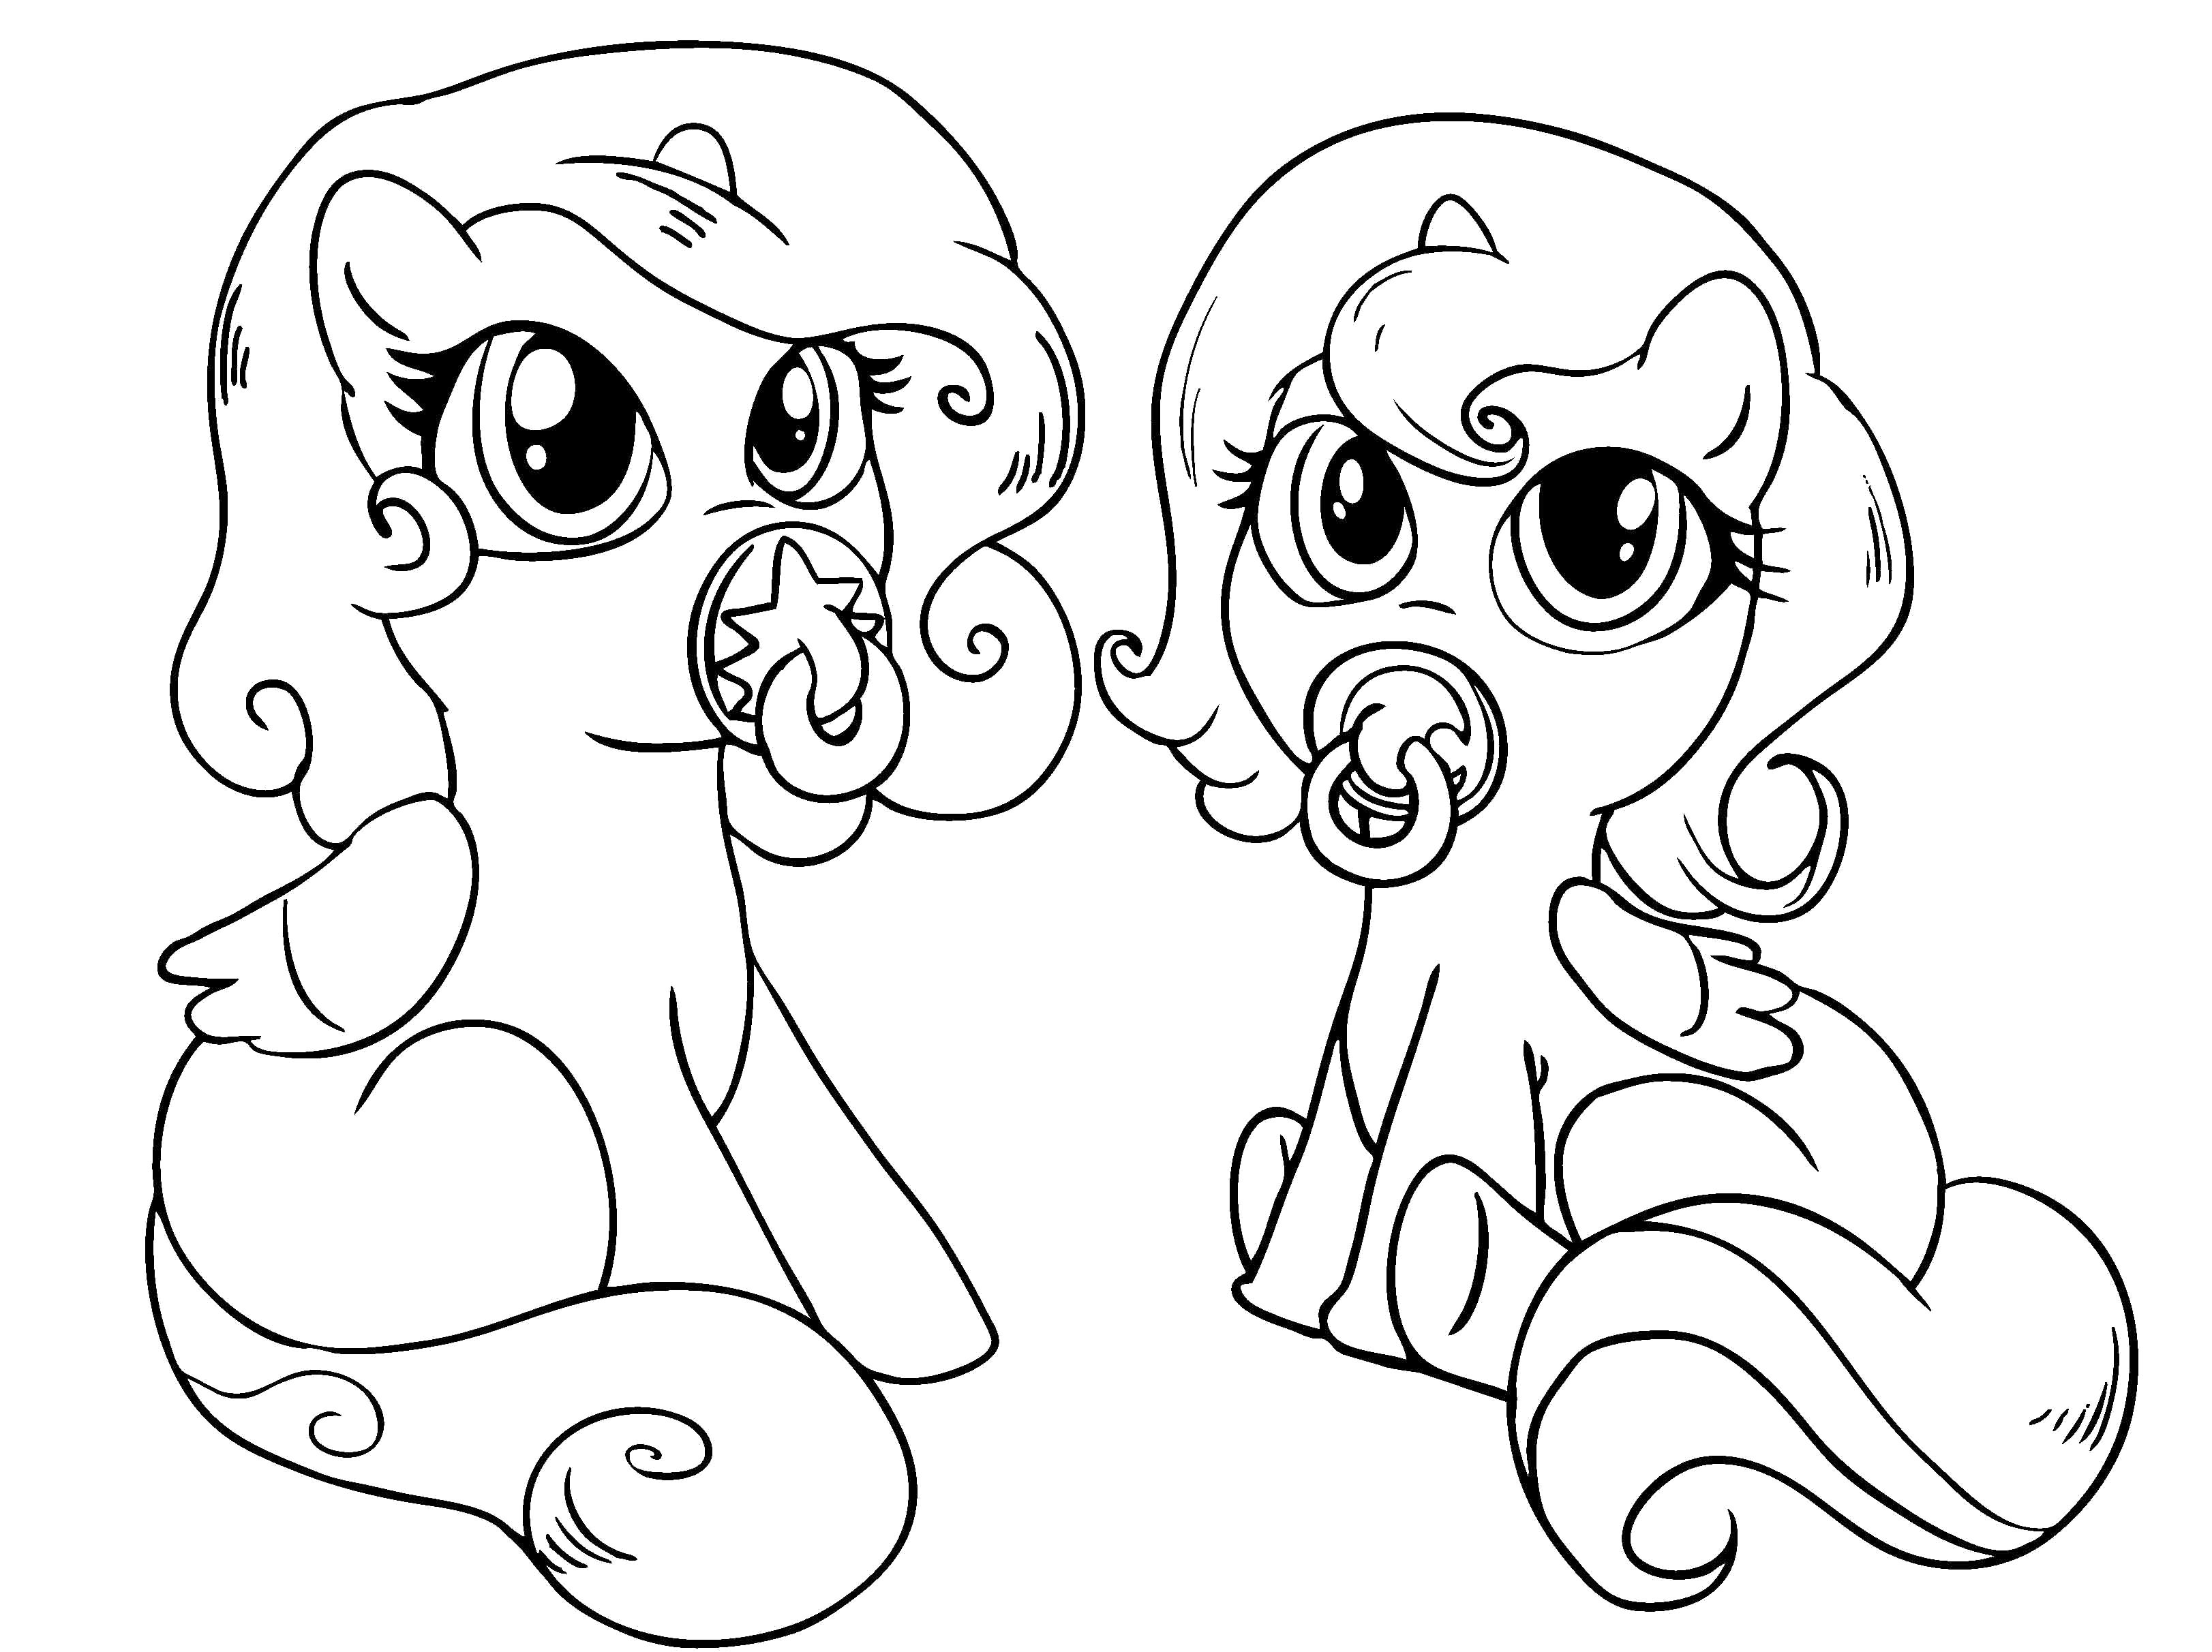 pictures of ponies to color ponies from ponyville coloring pages free printable color ponies of to pictures